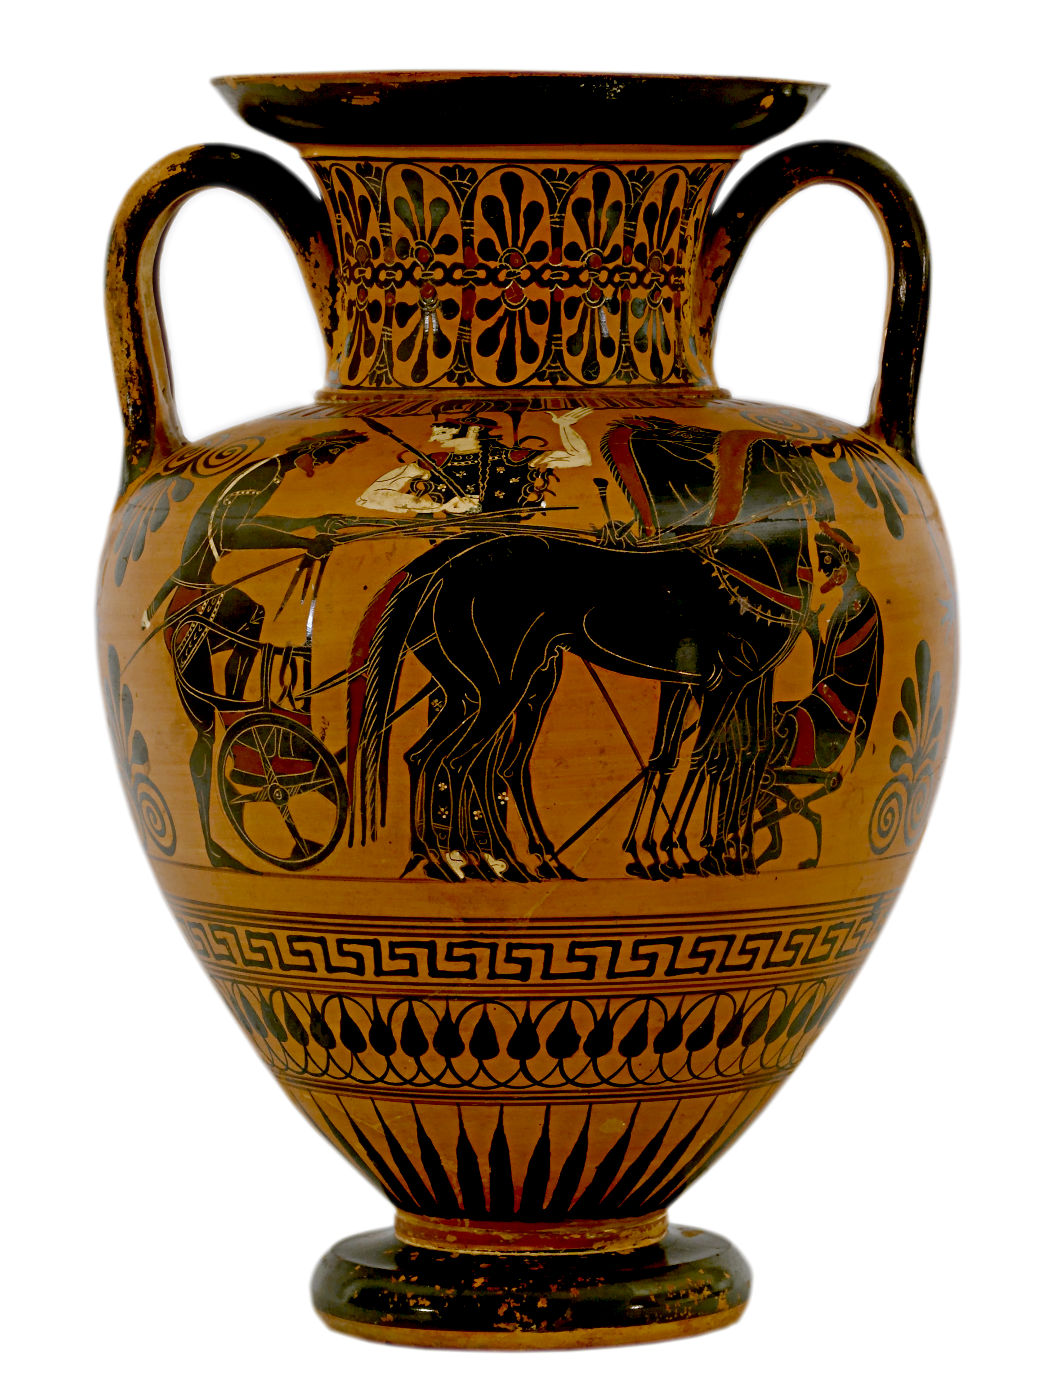 Greek Vase 1 (unwrapped, text